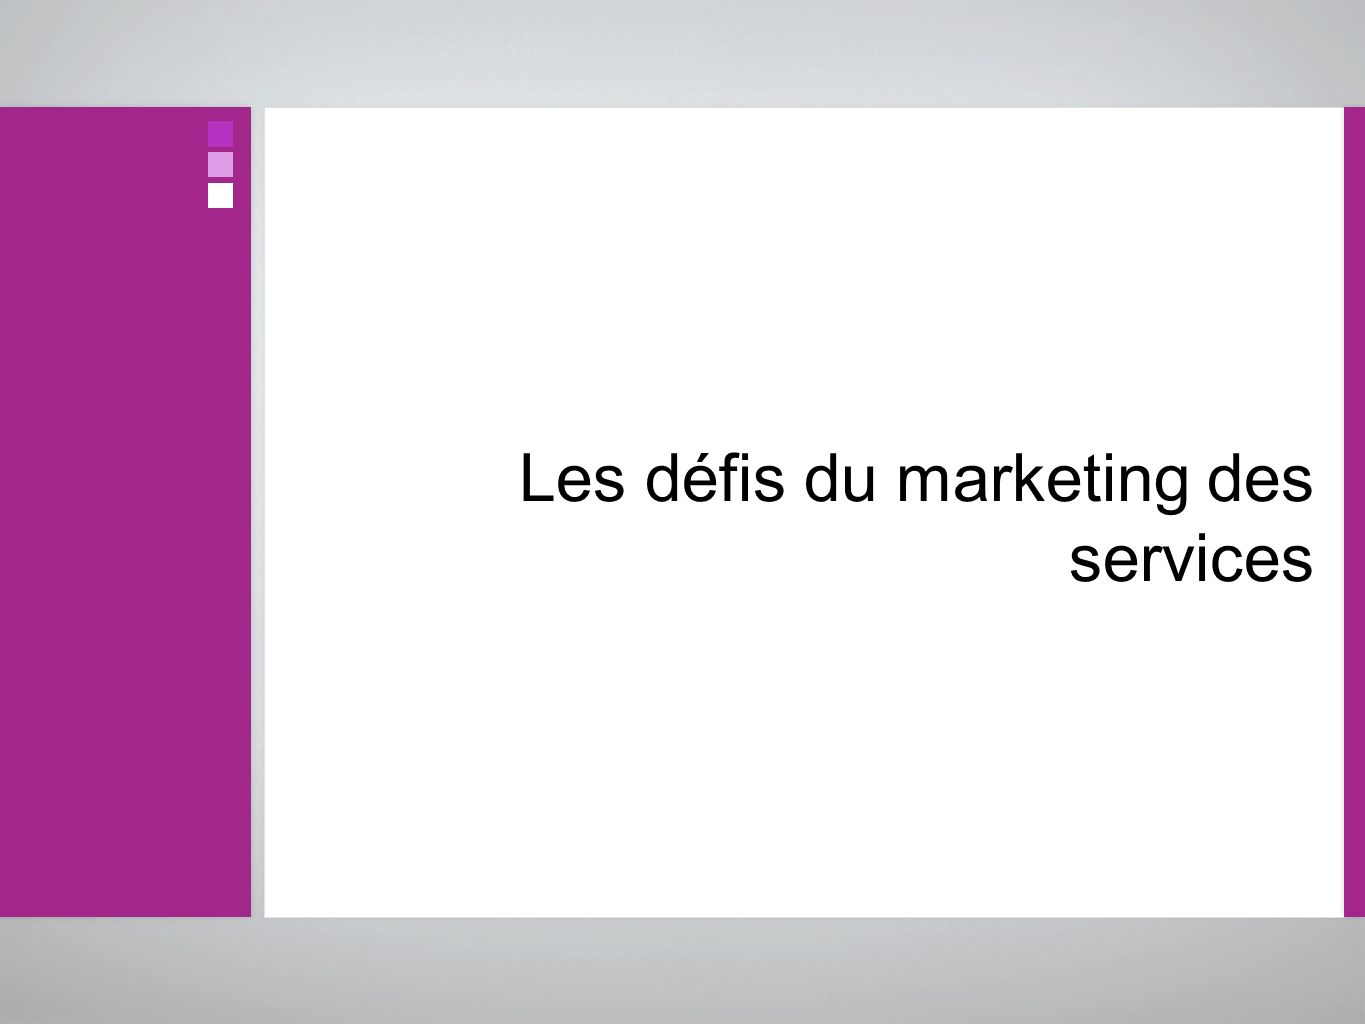 Les défis du marketing des services